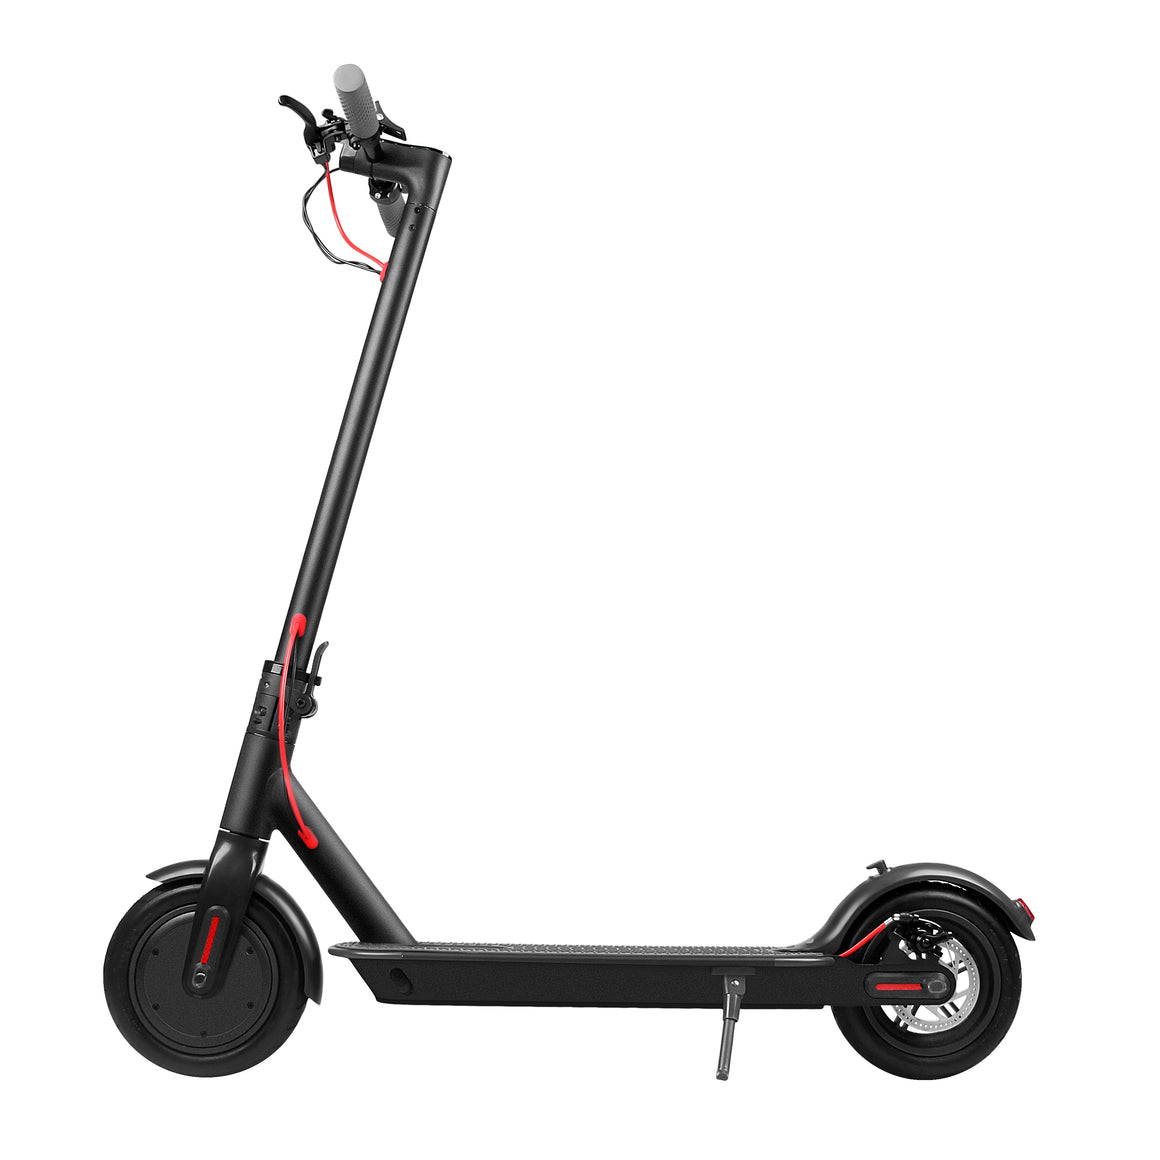 Xiaomi Mijia 1S Folding Electric Scooter 8.5 Inch Tire 500W Brushless Motor Up To 30km Range Max speed 25km/h Smart Display Dual Brake